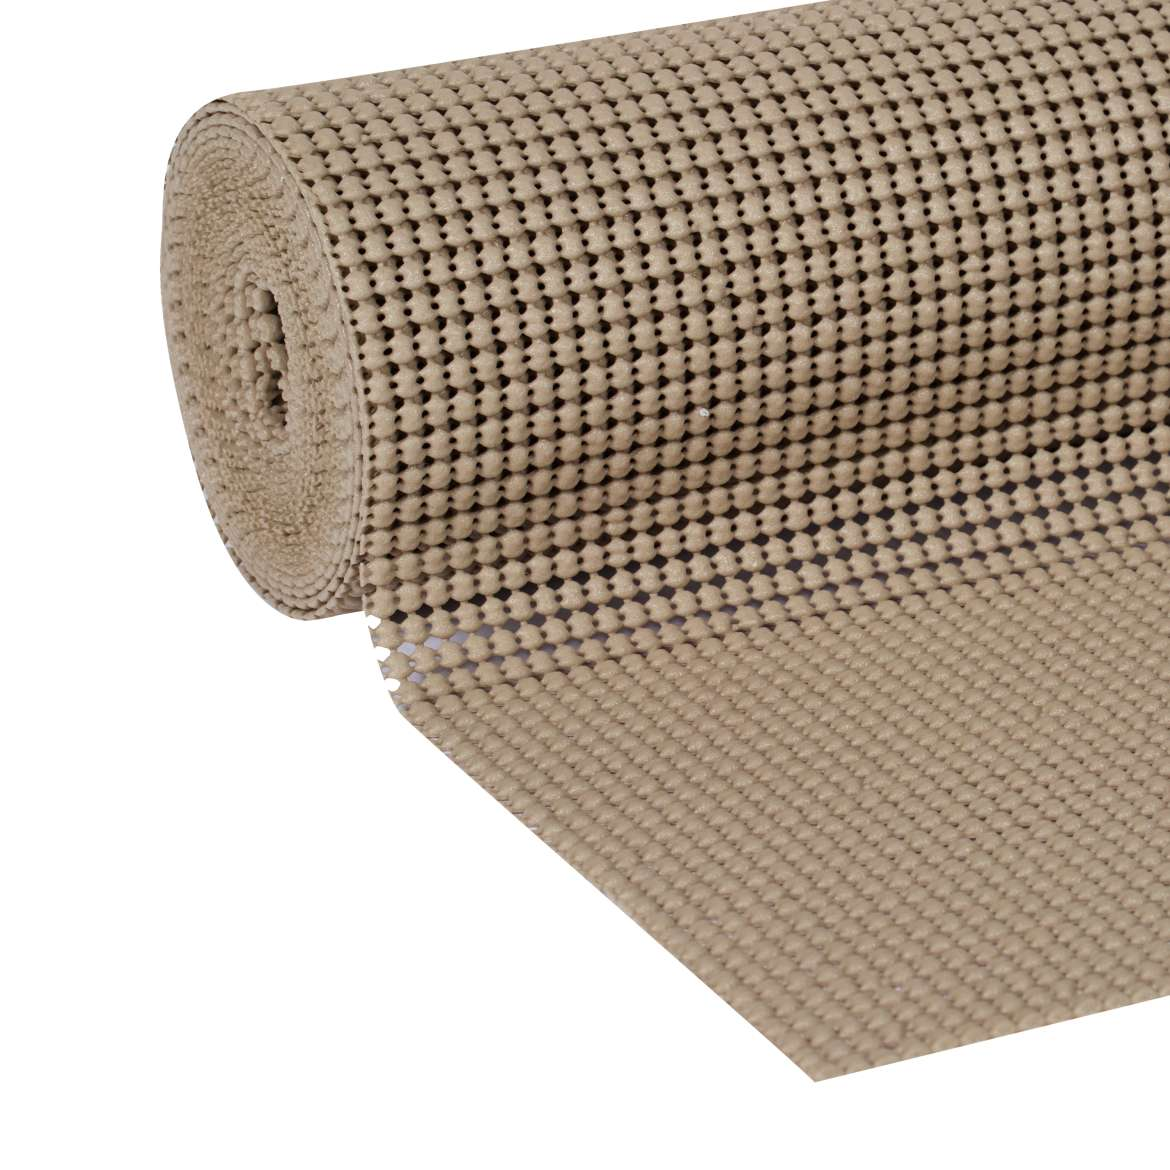 "Duck Brand Select Easy Liner Shelf Liner, Brownstone. 12"" x 10'"